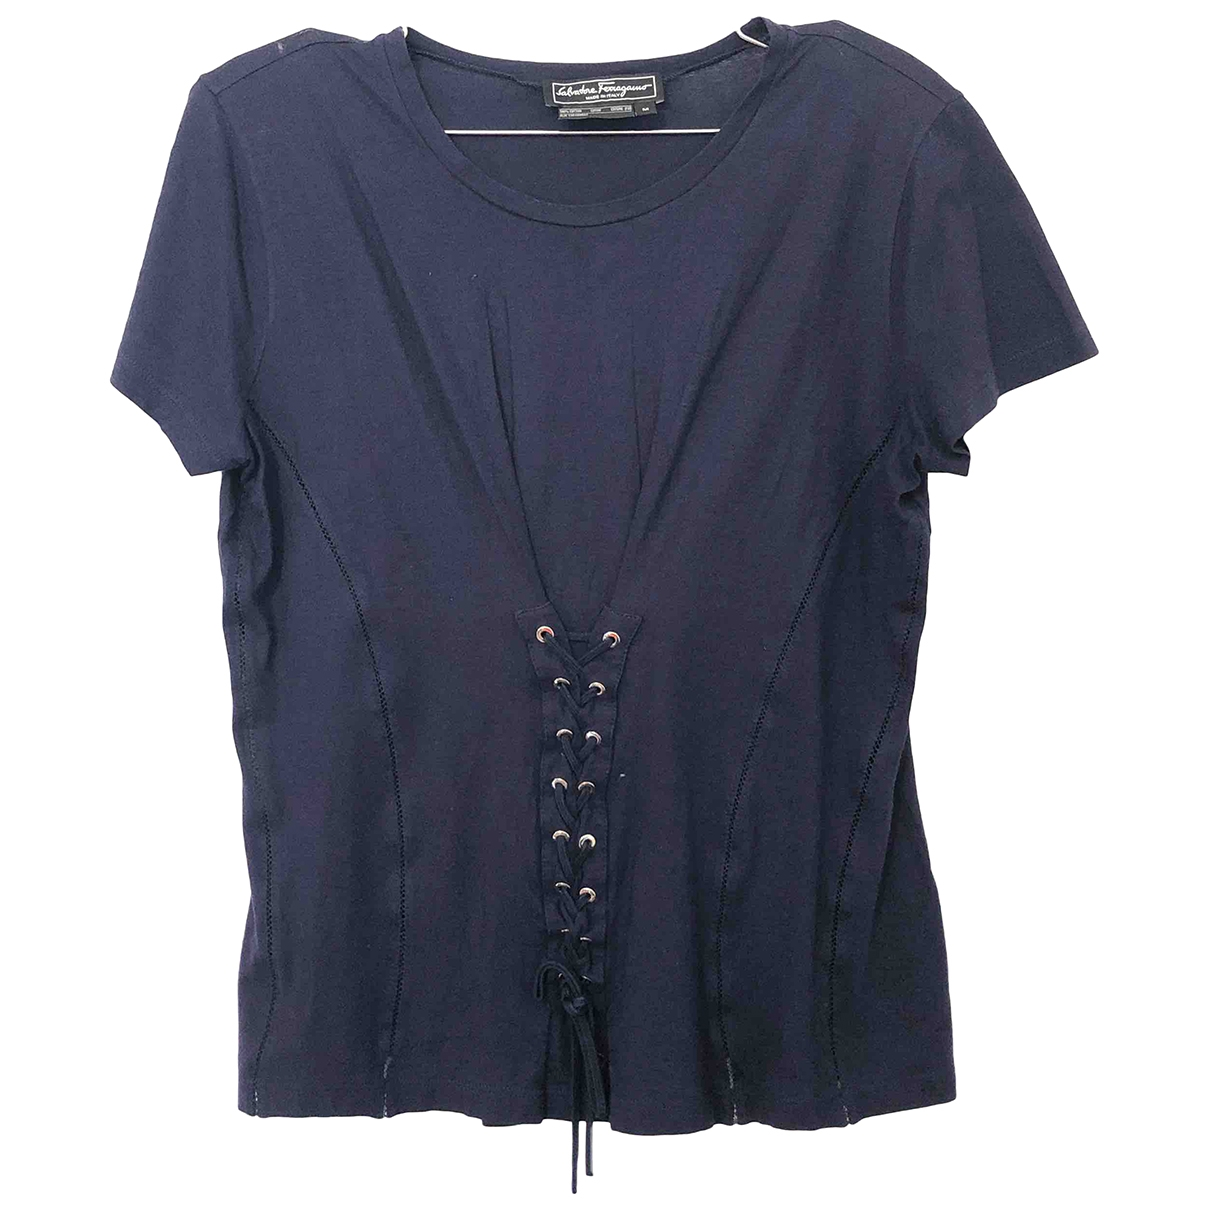 Salvatore Ferragamo \N Blue Cotton  top for Women M International